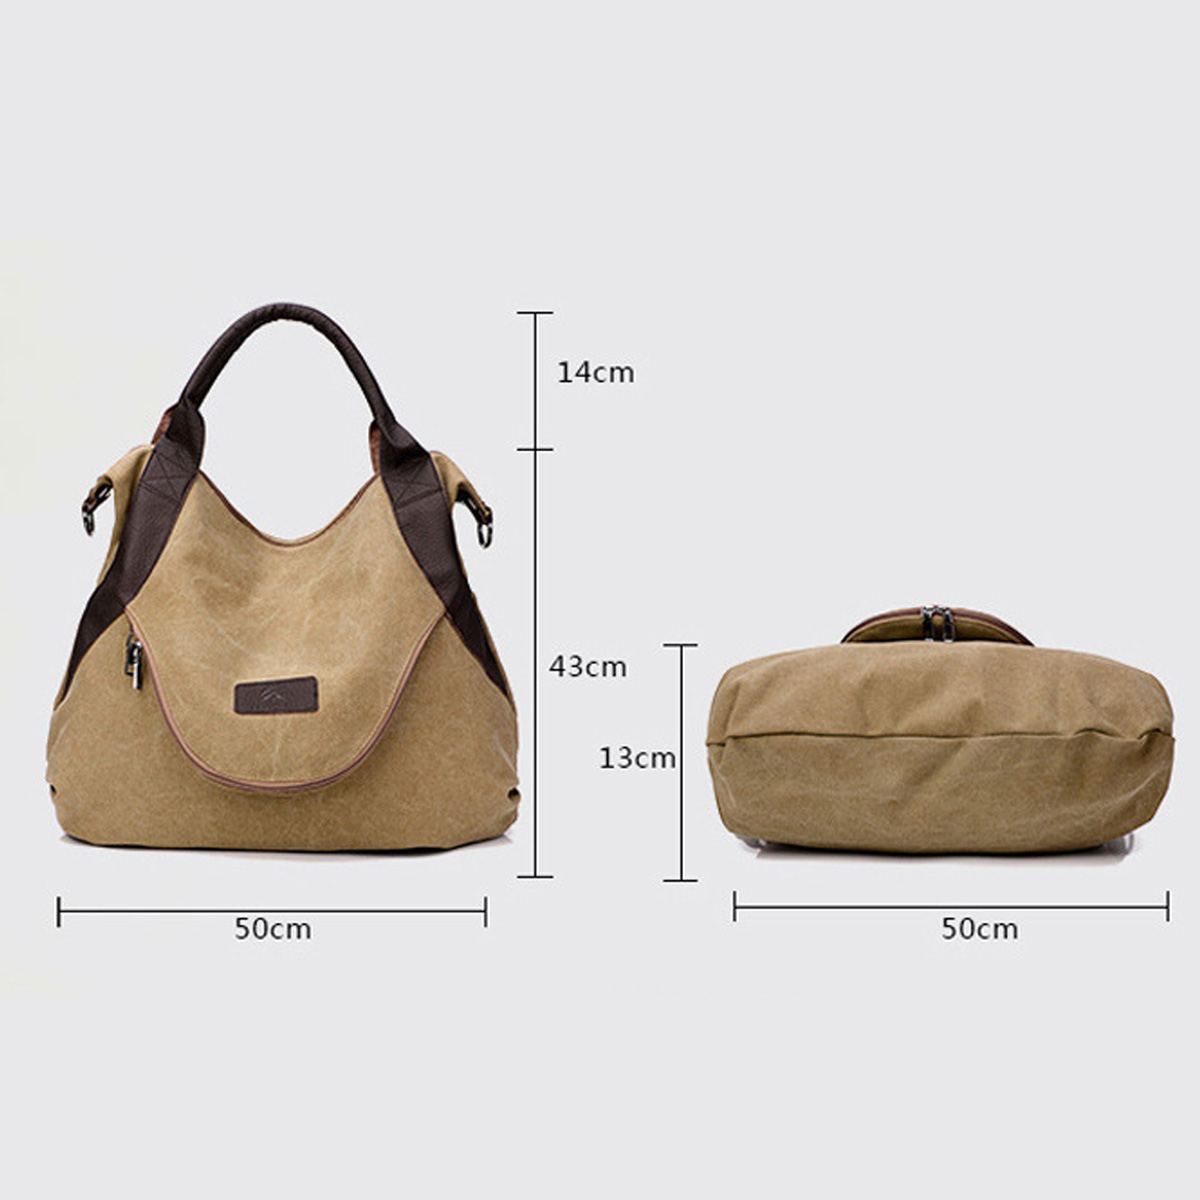 NEW Large Pocket Casual Tote Women's Handbag Shoulder Handbags Canvas Leather Capacity Bags For Women